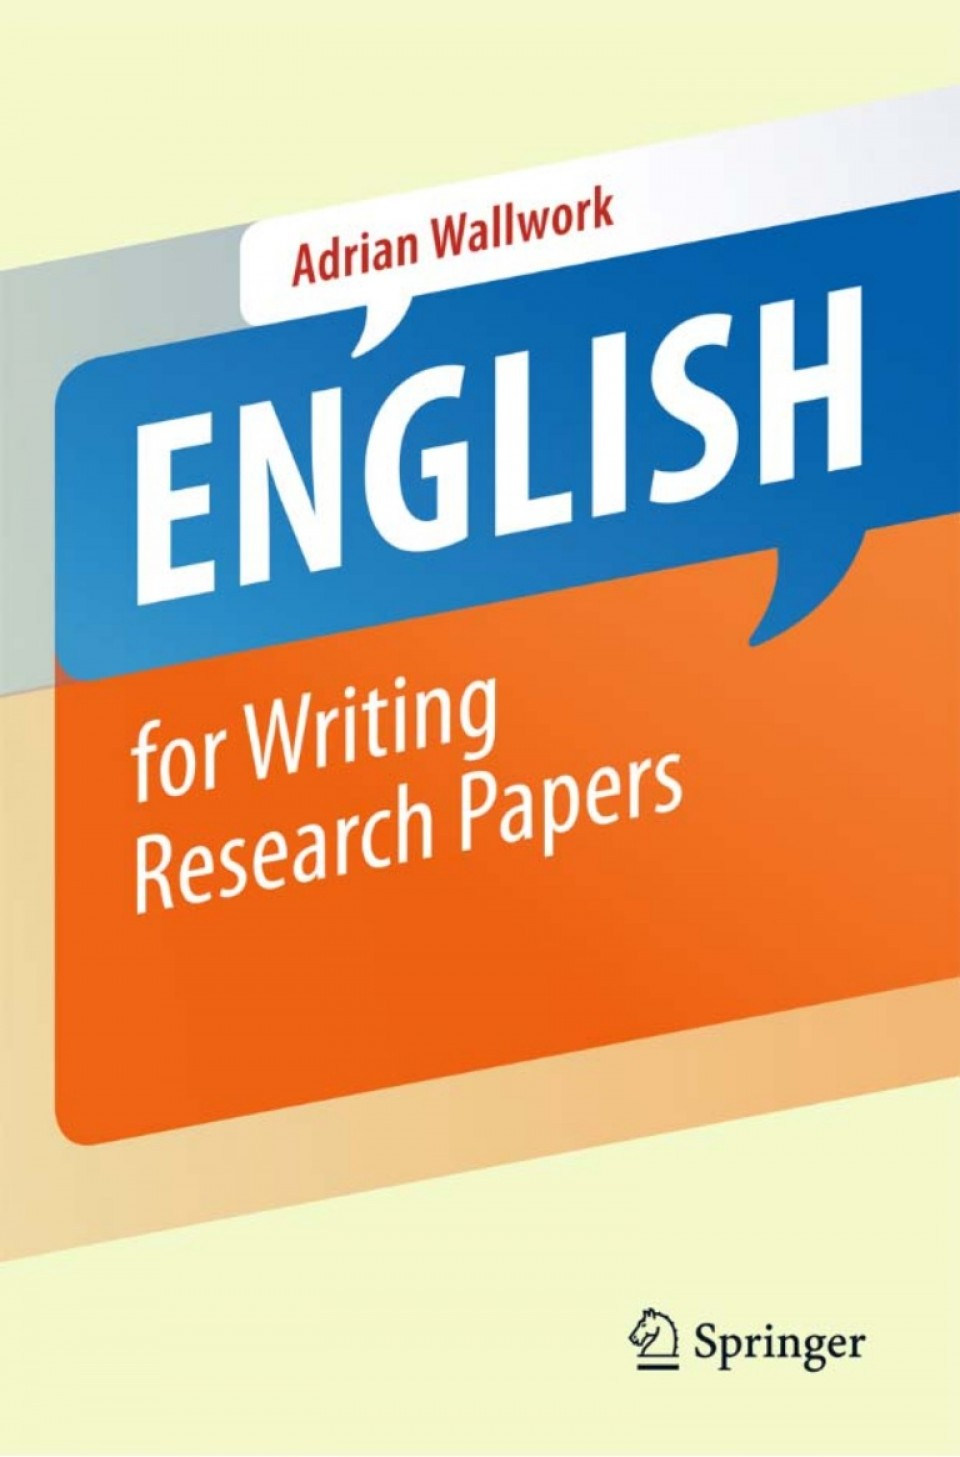 019 Englishforwritingresearchpapers Conversion Gate01 Thumbnail Writing Research Striking Paper Papers Lester 16th Edition A Complete Guide James D. 960